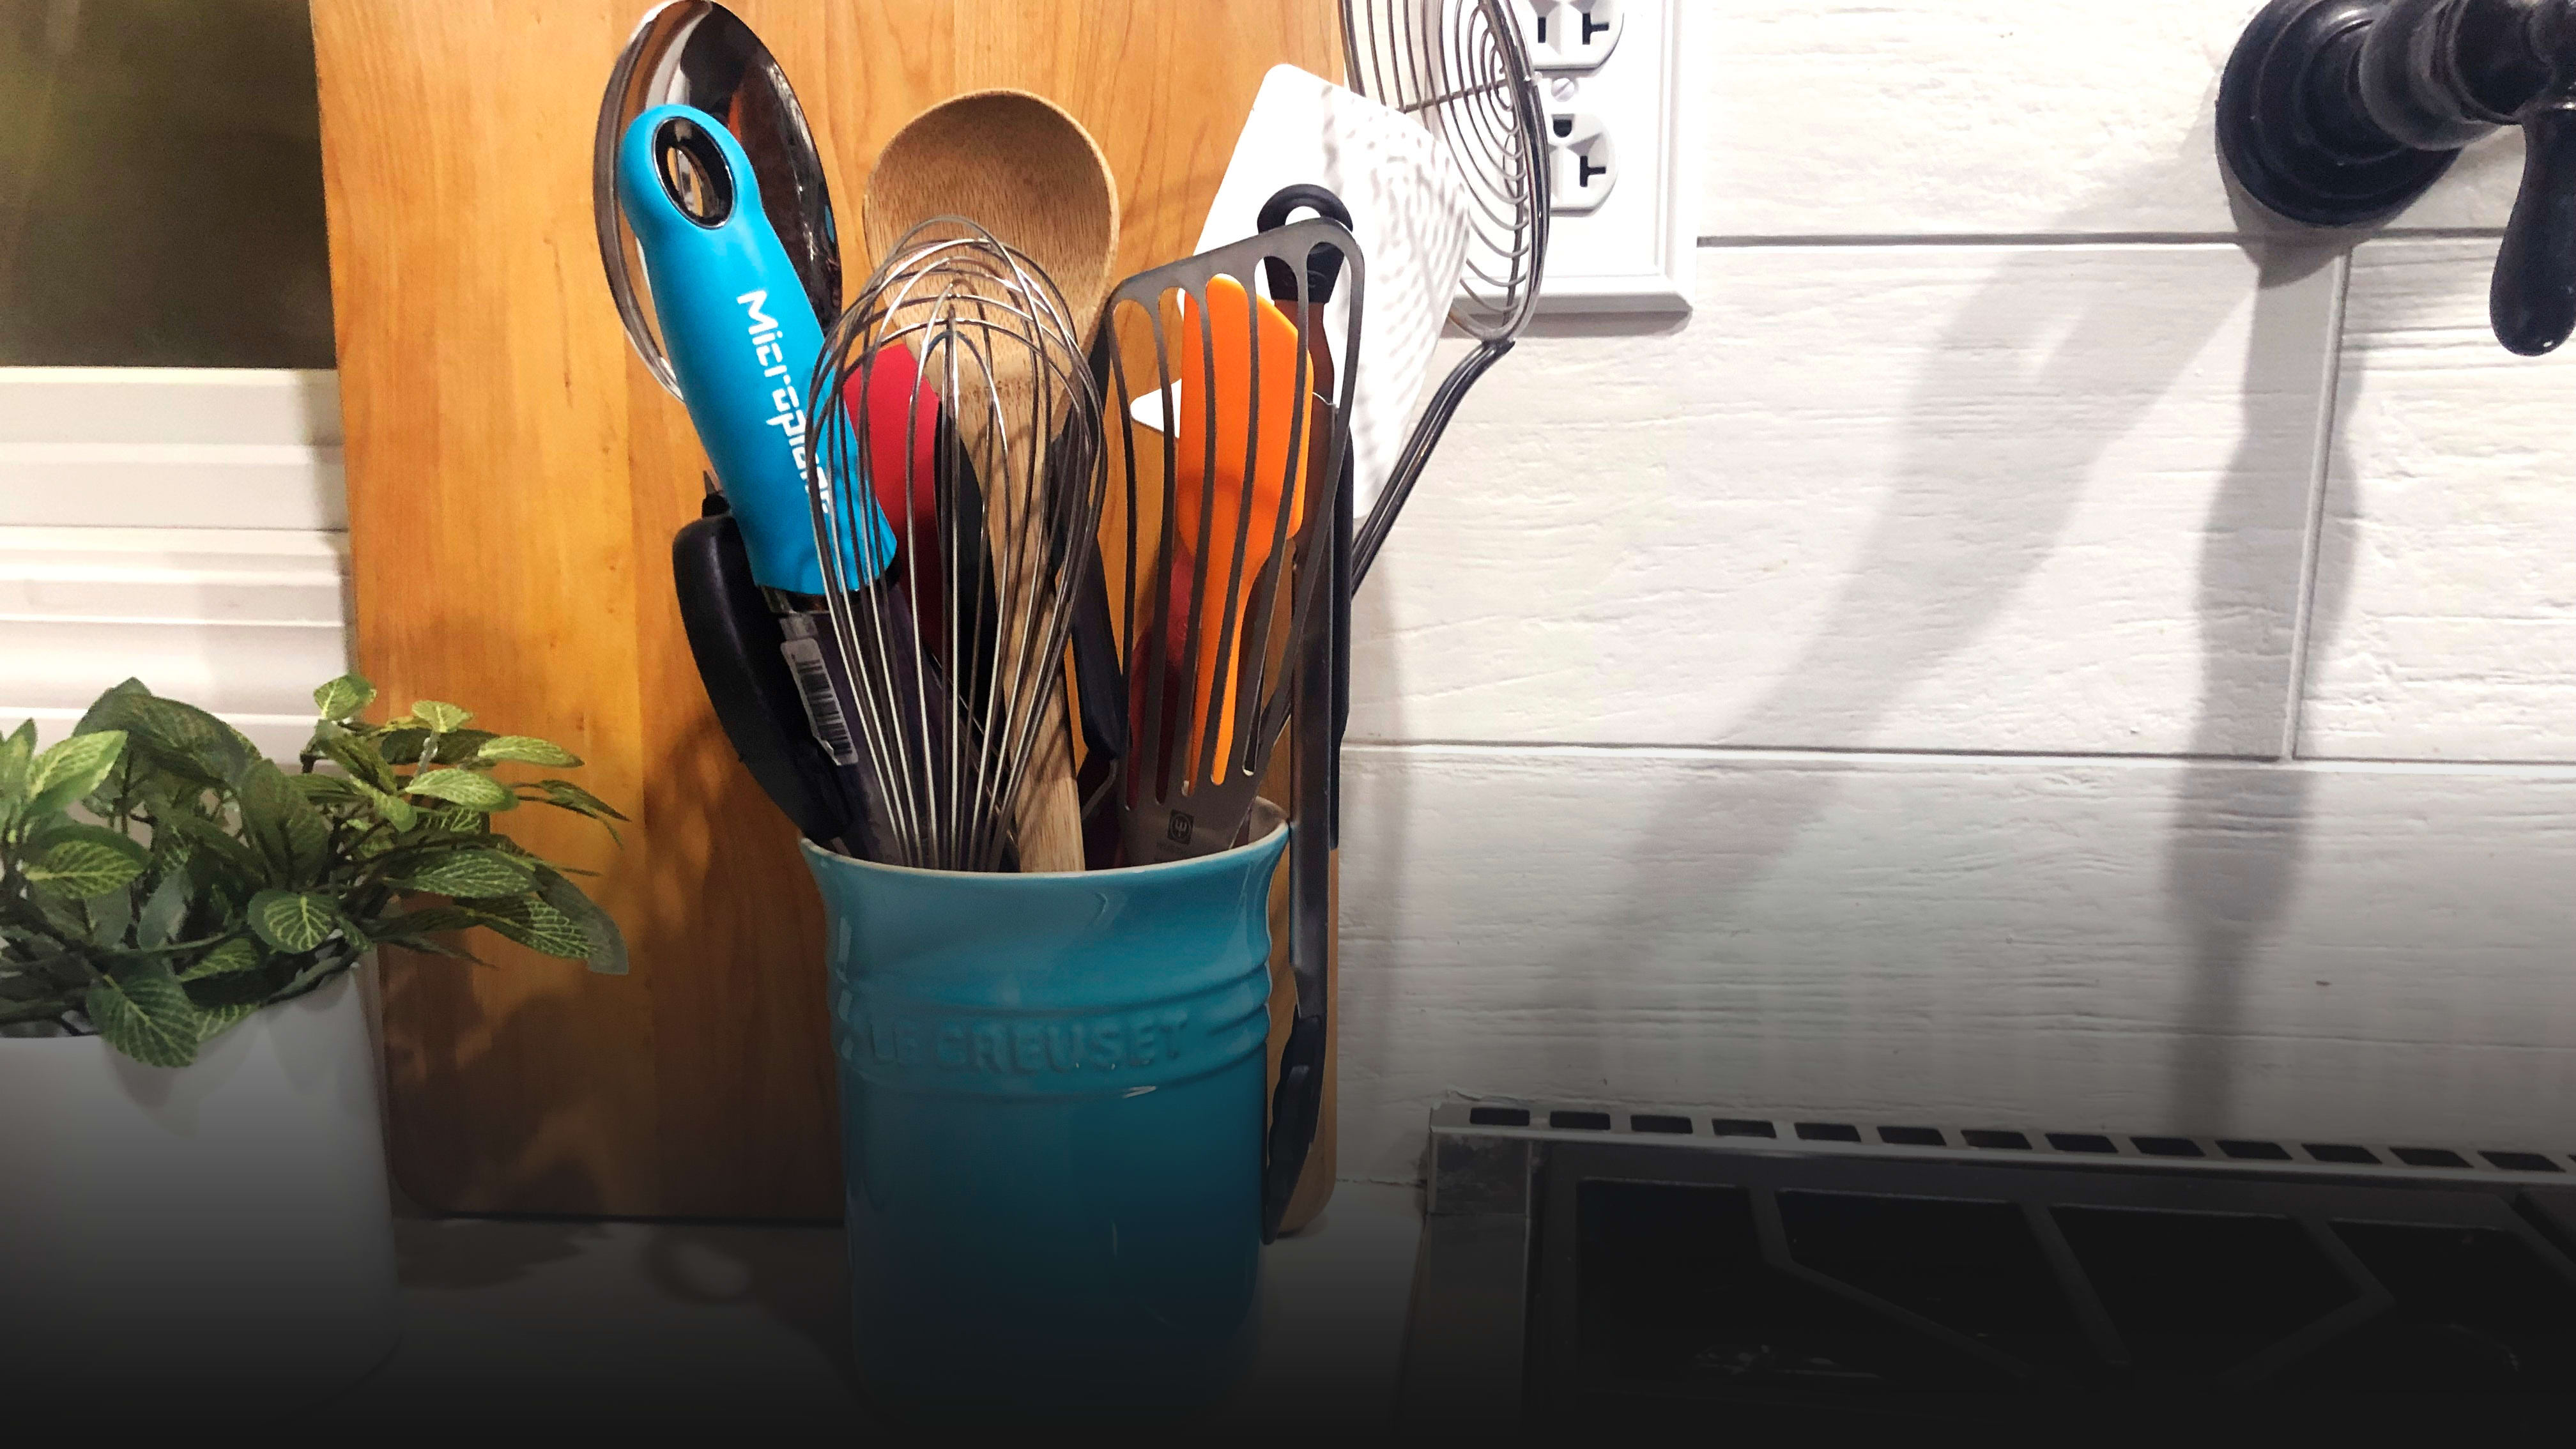 What a Professional Kitchen Equipment Tester Keeps in Her Utensil Crock